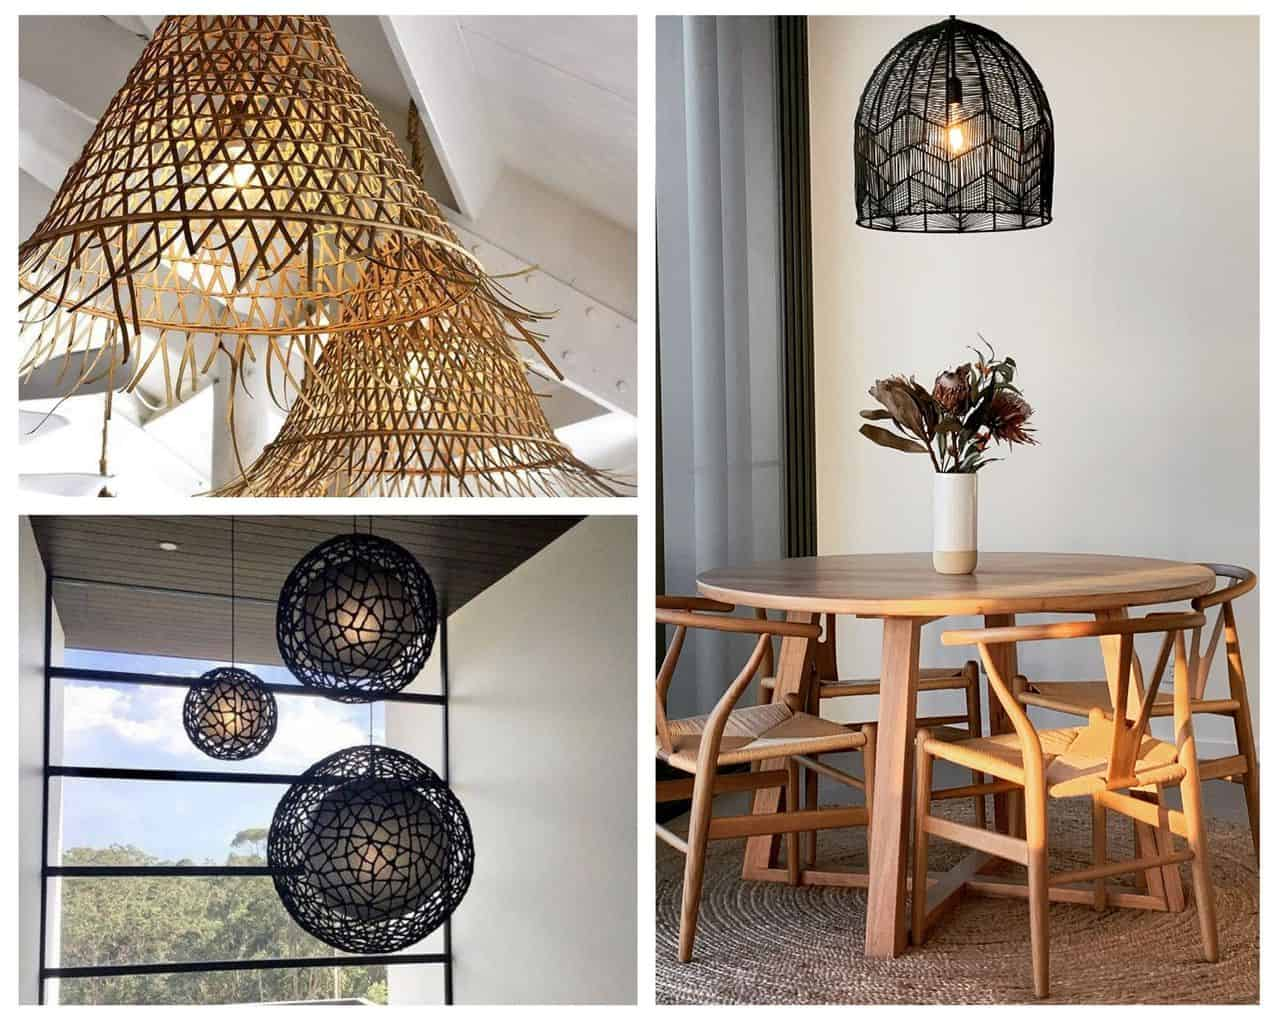 10 rattan pendant lights we can't get enough of